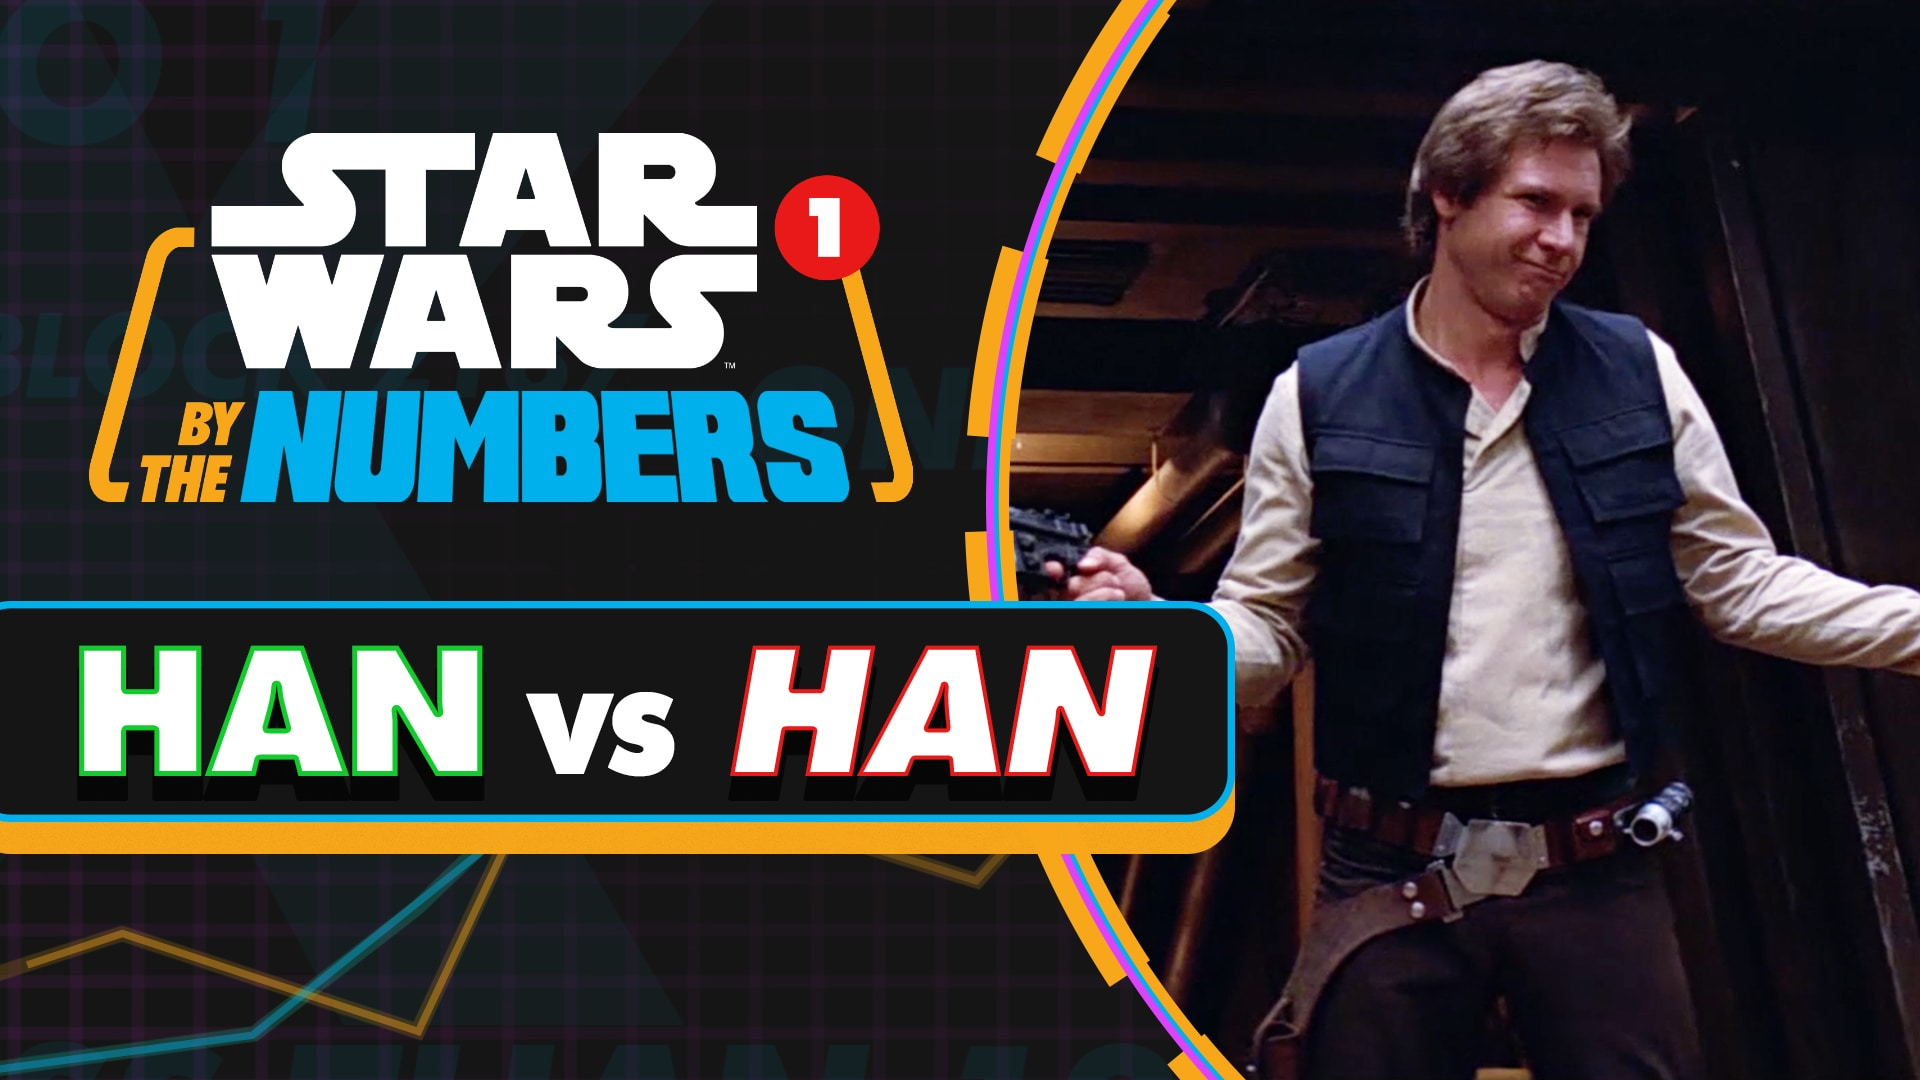 """Han"" Pronunciations in the Star Wars Movies 